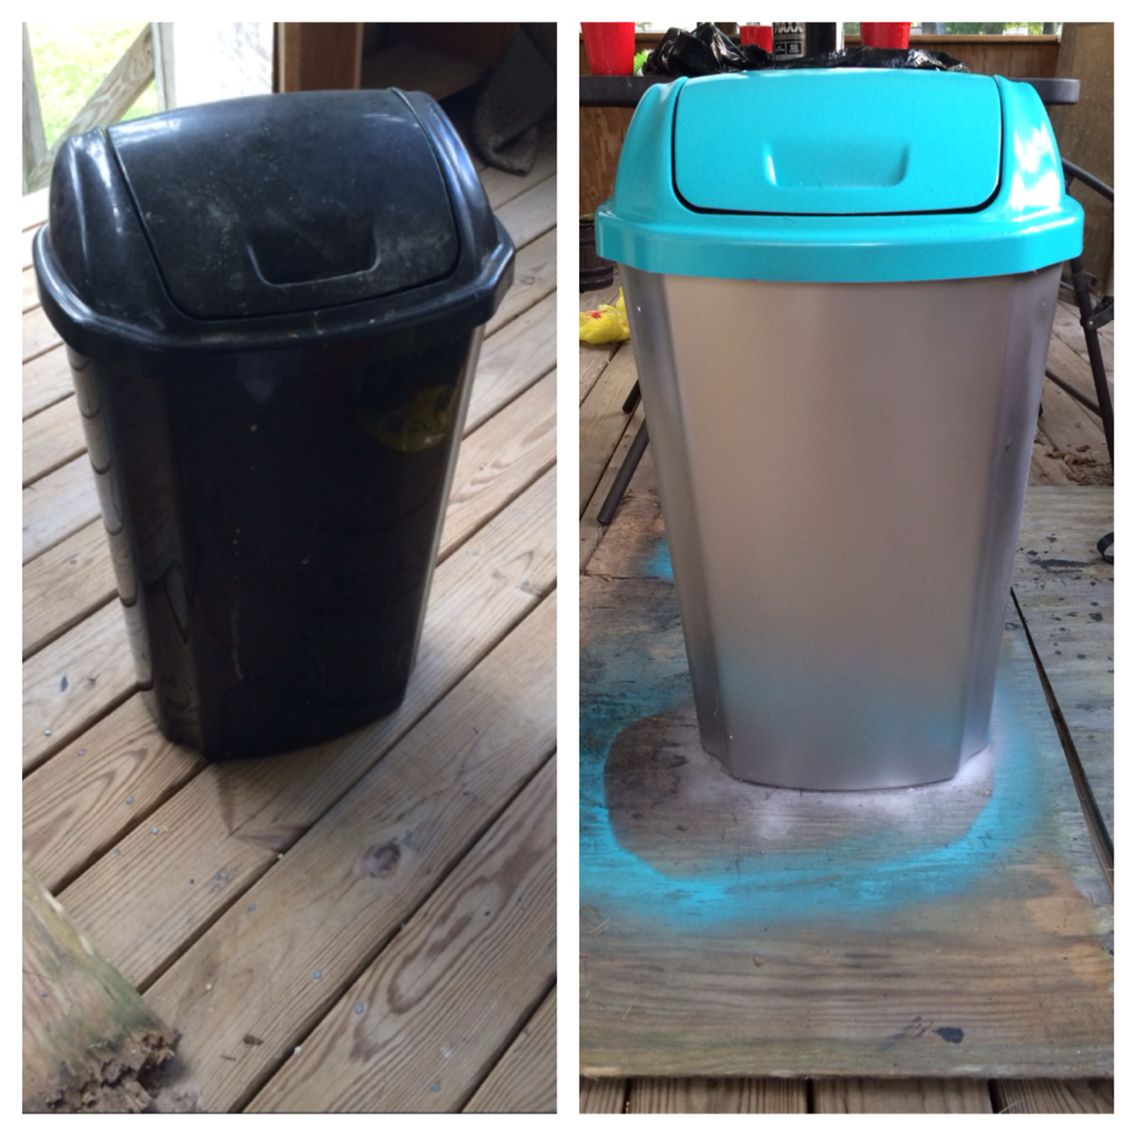 65aa260b777e Plastic trash can make over! Very cheap and super easy. Just need ...